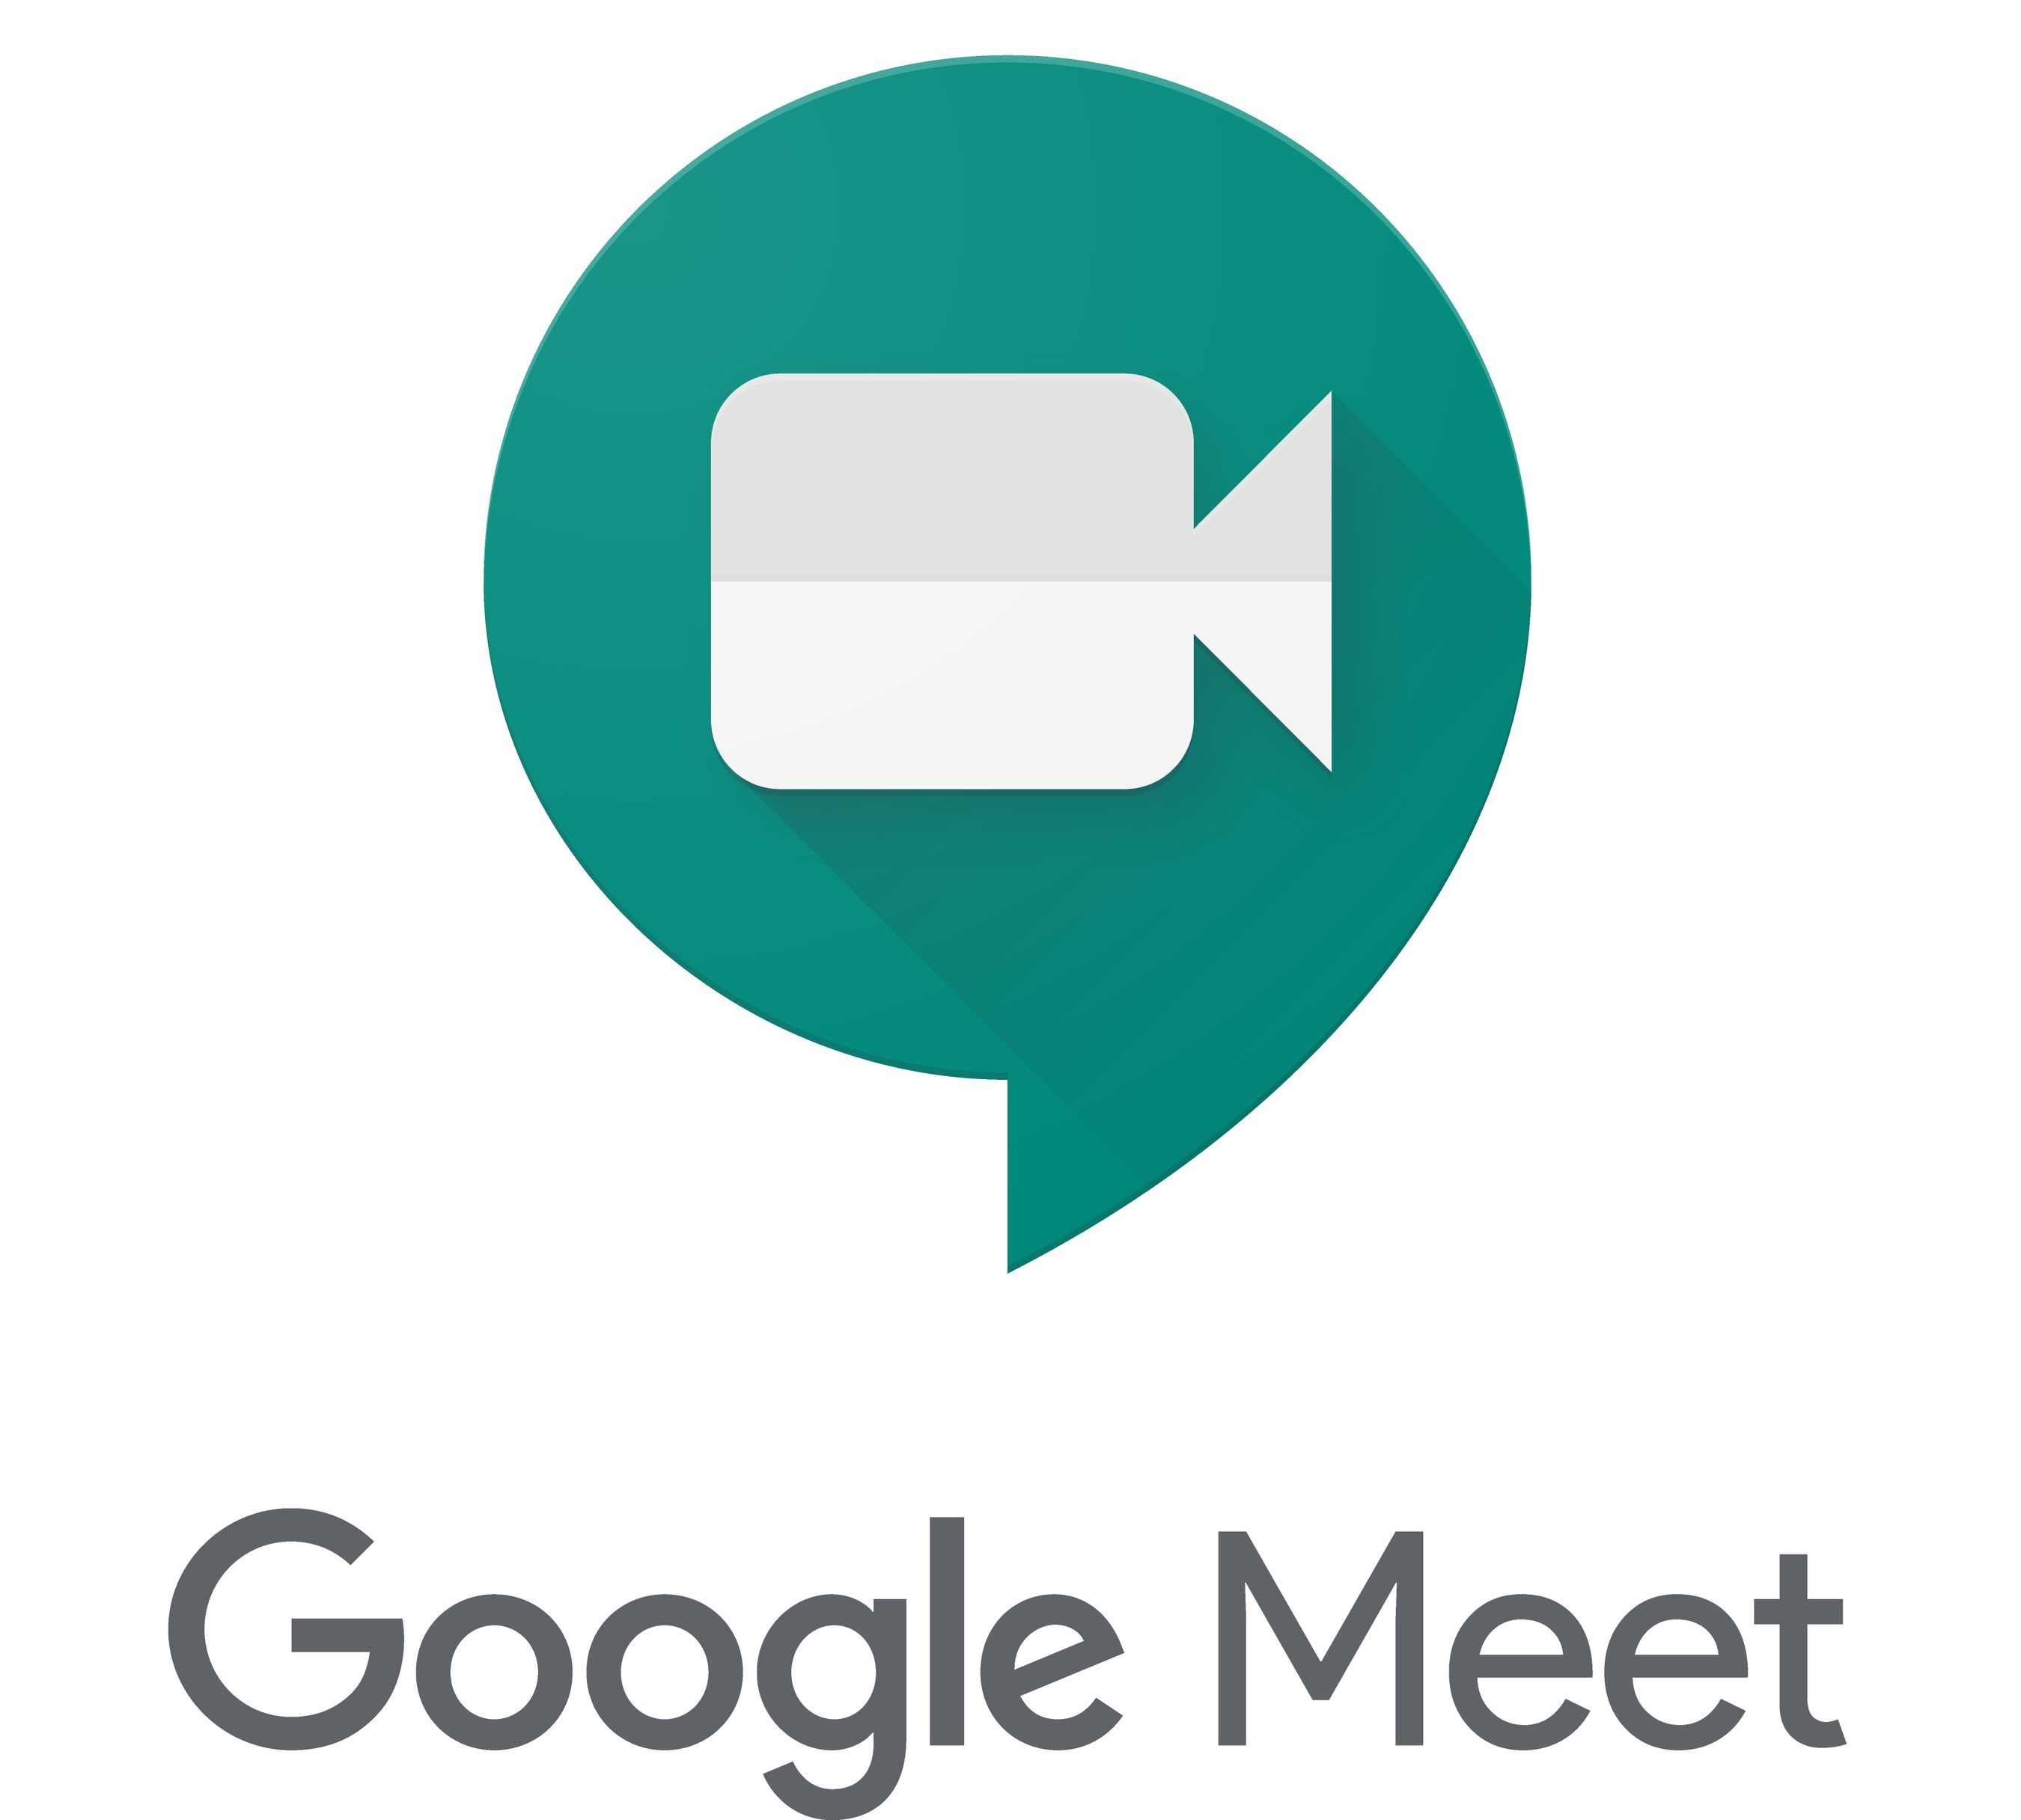 Google Meet premium video conferencing free for everyone, everywhere